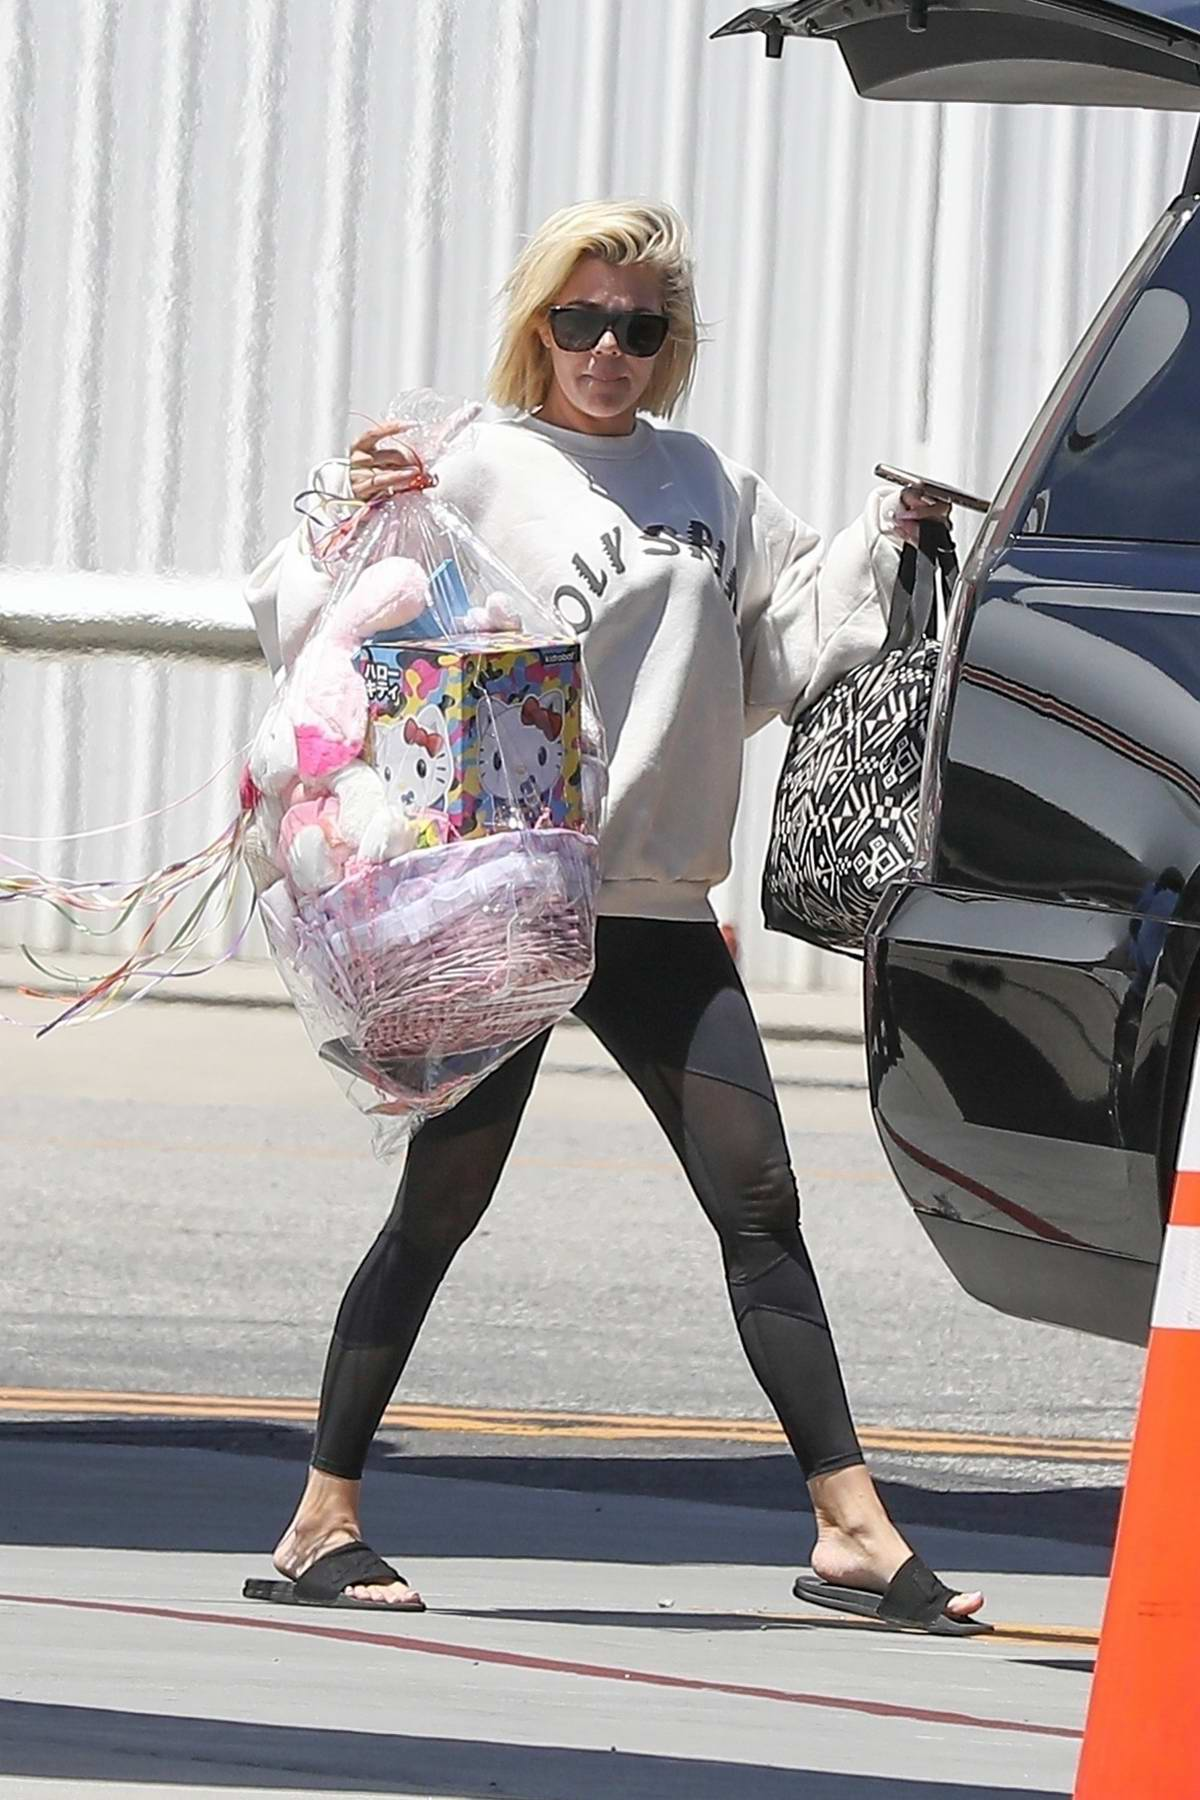 Khloe Kardashian arrives back with her baby from Palm Springs on a private jet at Van Nuys airport, California